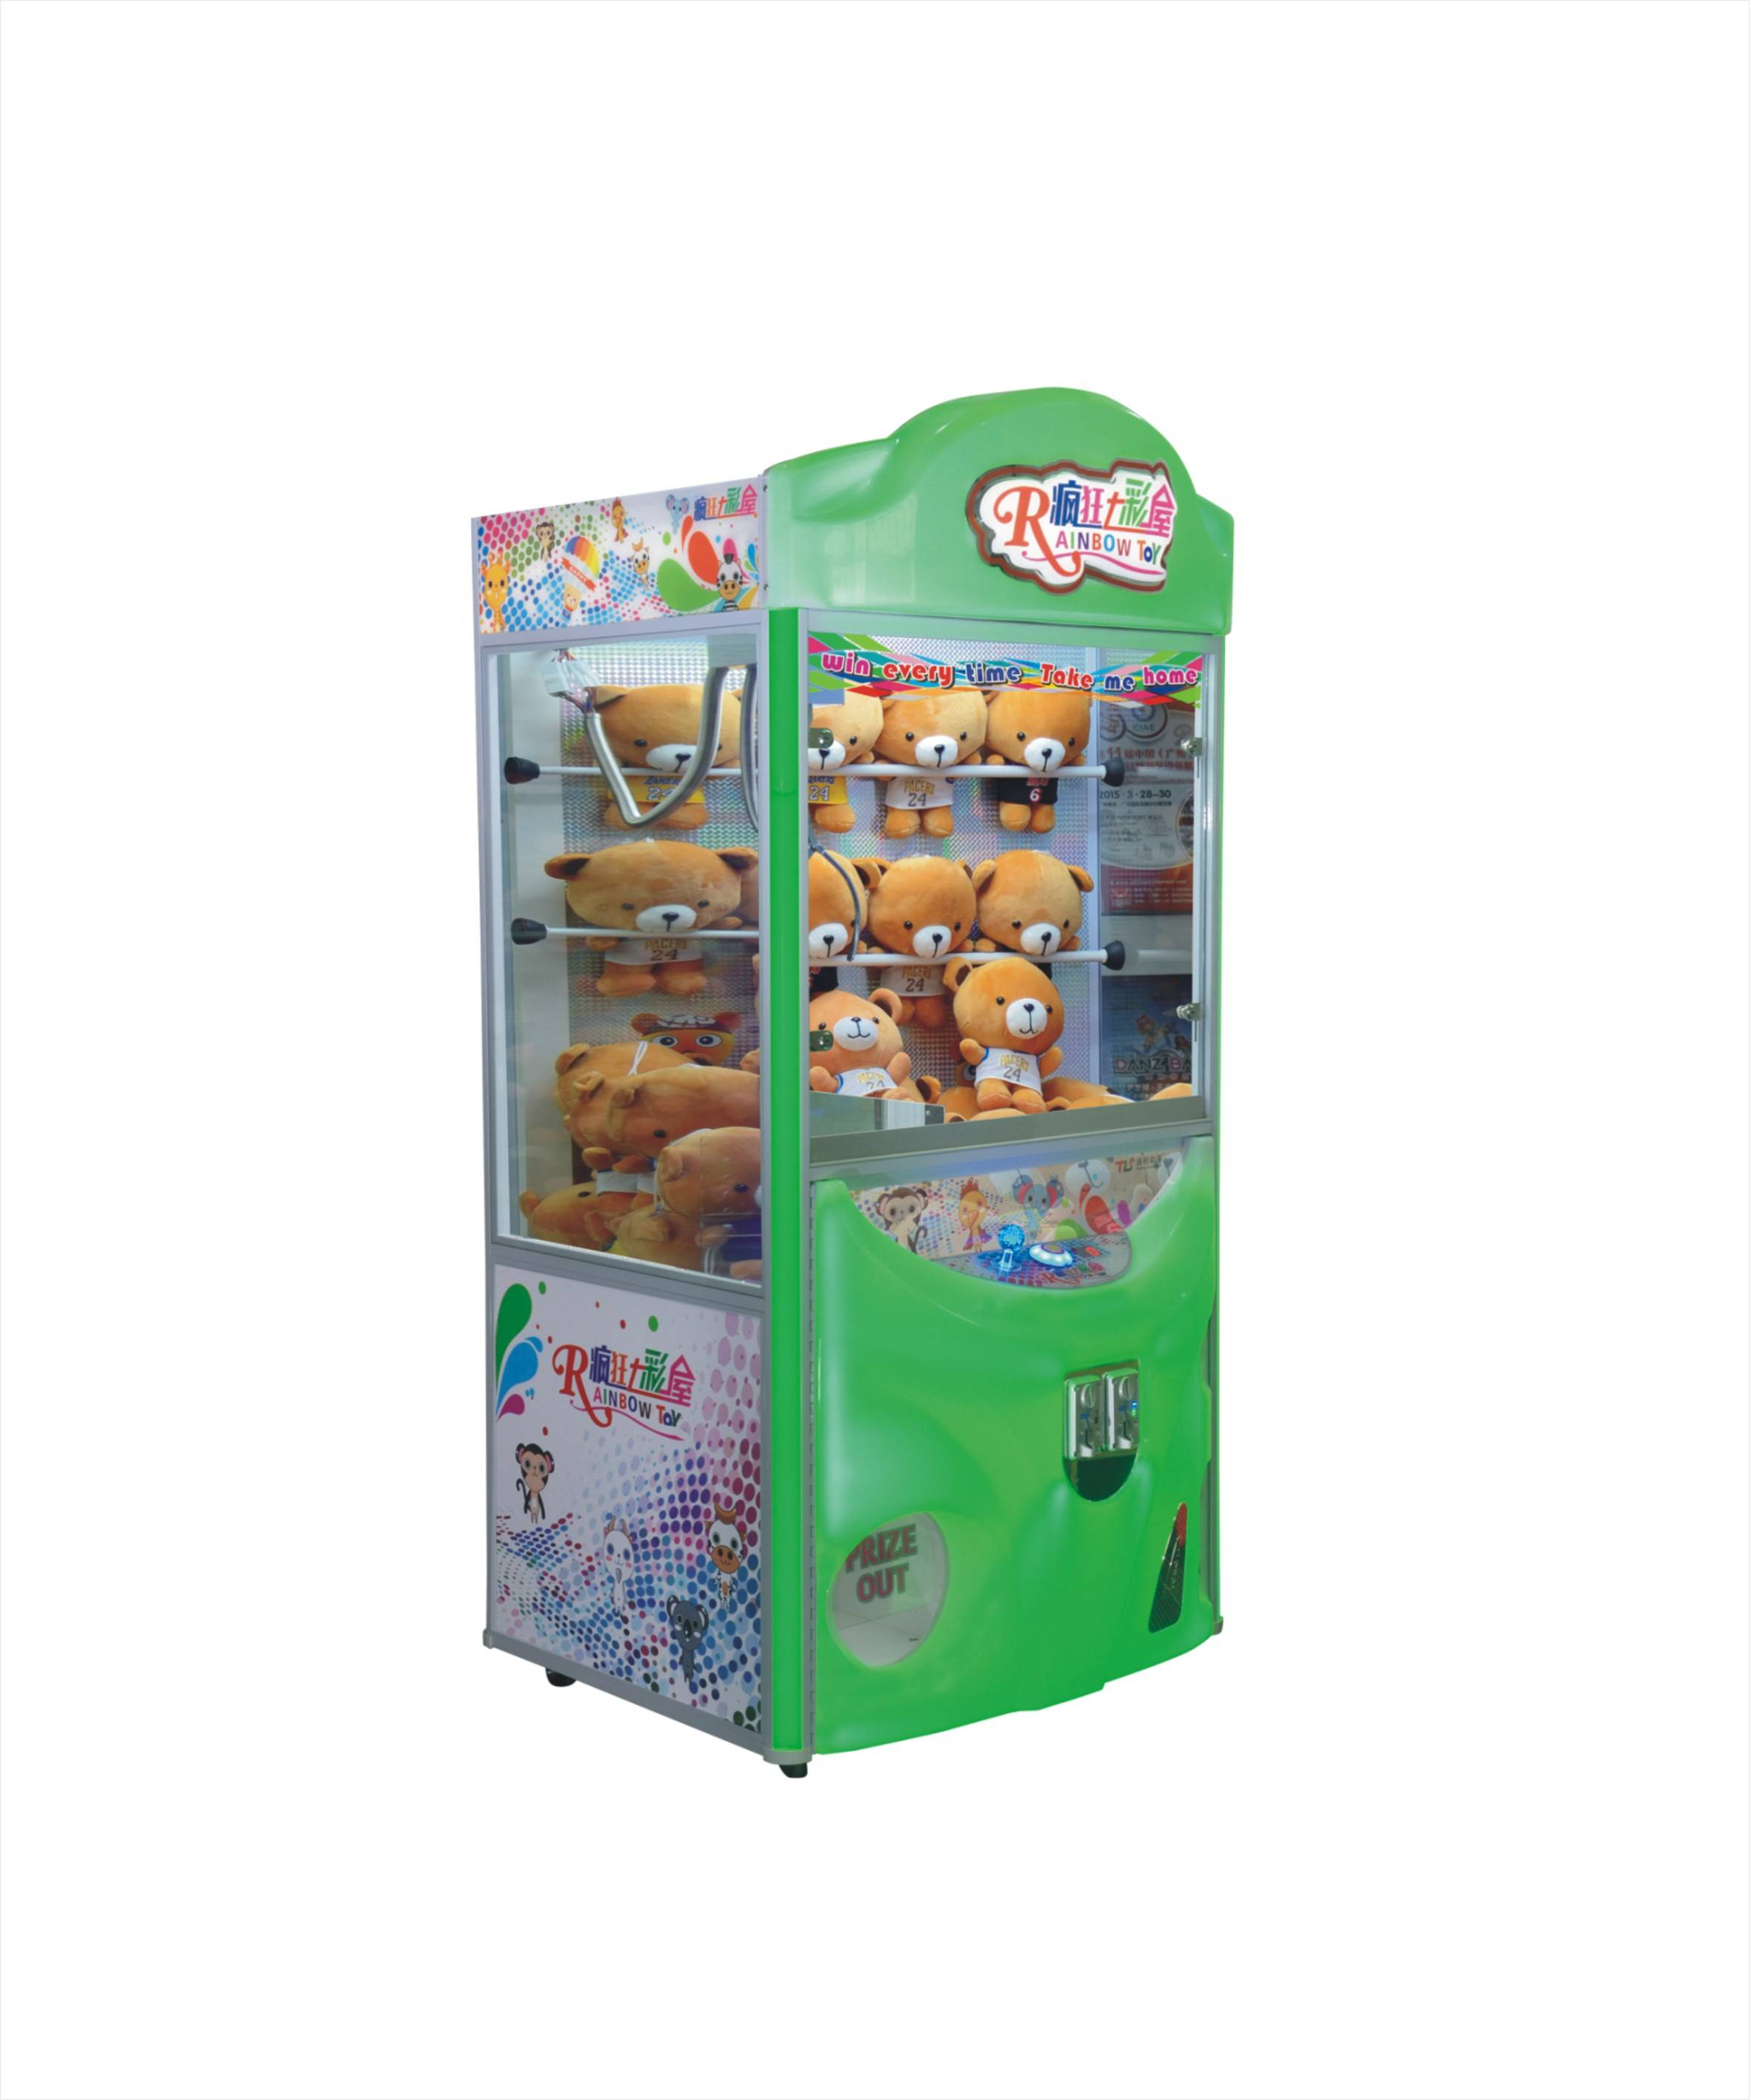 Rainbow Toy gaint claw crane machine type vending game machine